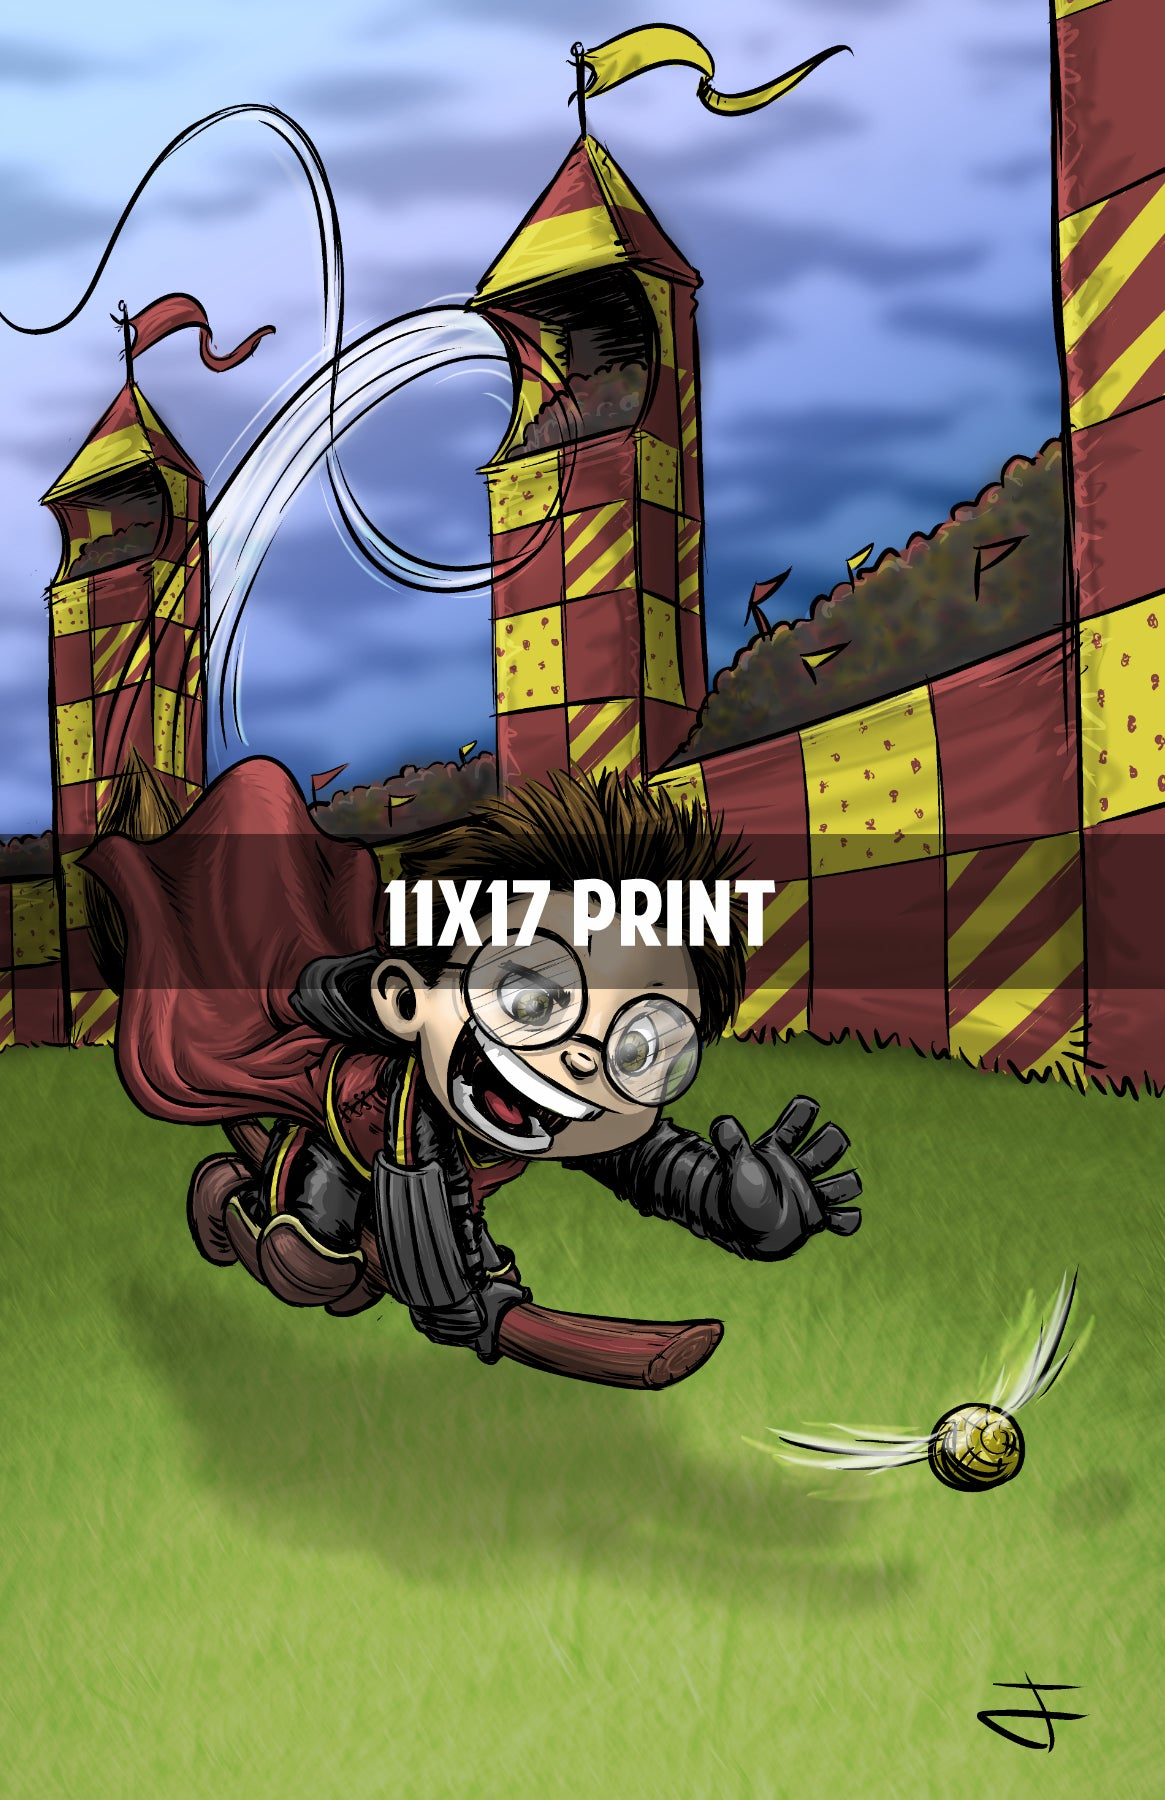 Harry Potter Quidditch - 11x17 Print